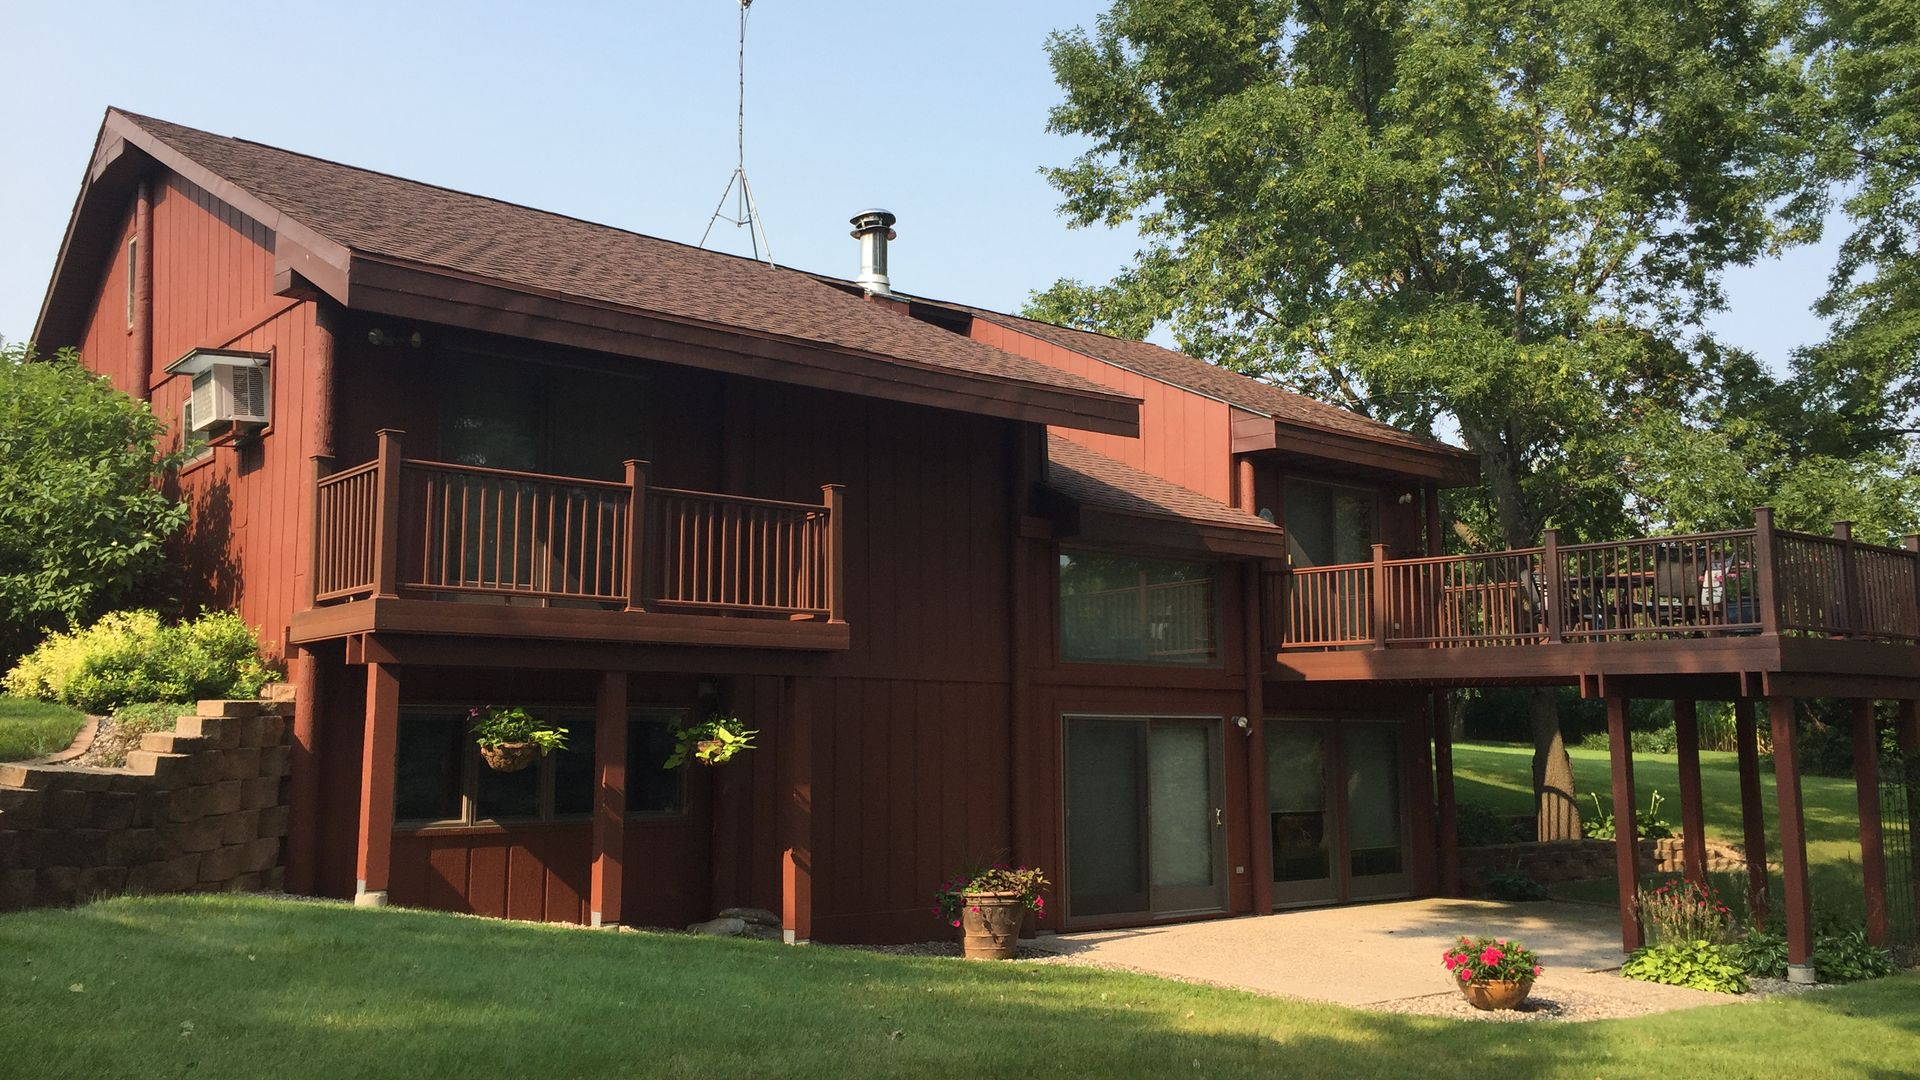 Lyon County Real Estate - Lyon County MN Homes For Sale | Zillow